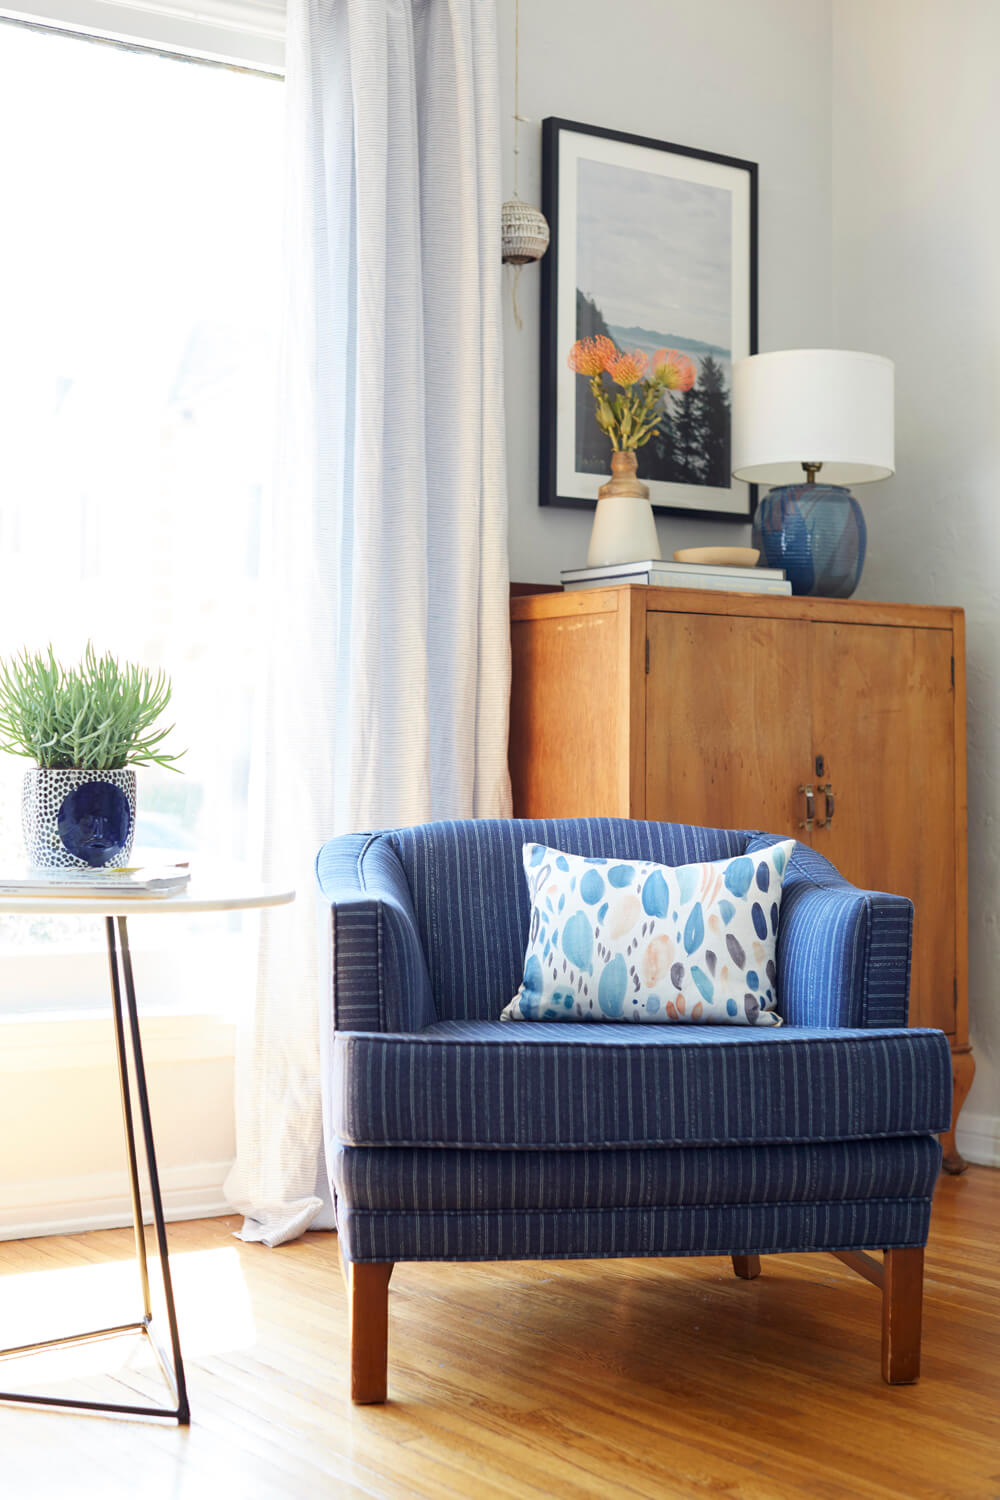 Inspiration for Mix & Match Design Company's guest room makeover for the One Room Challenge. Love the mix of old and new in this living room. The blue striped chair plus the antique cabinet in the corner is perfection!